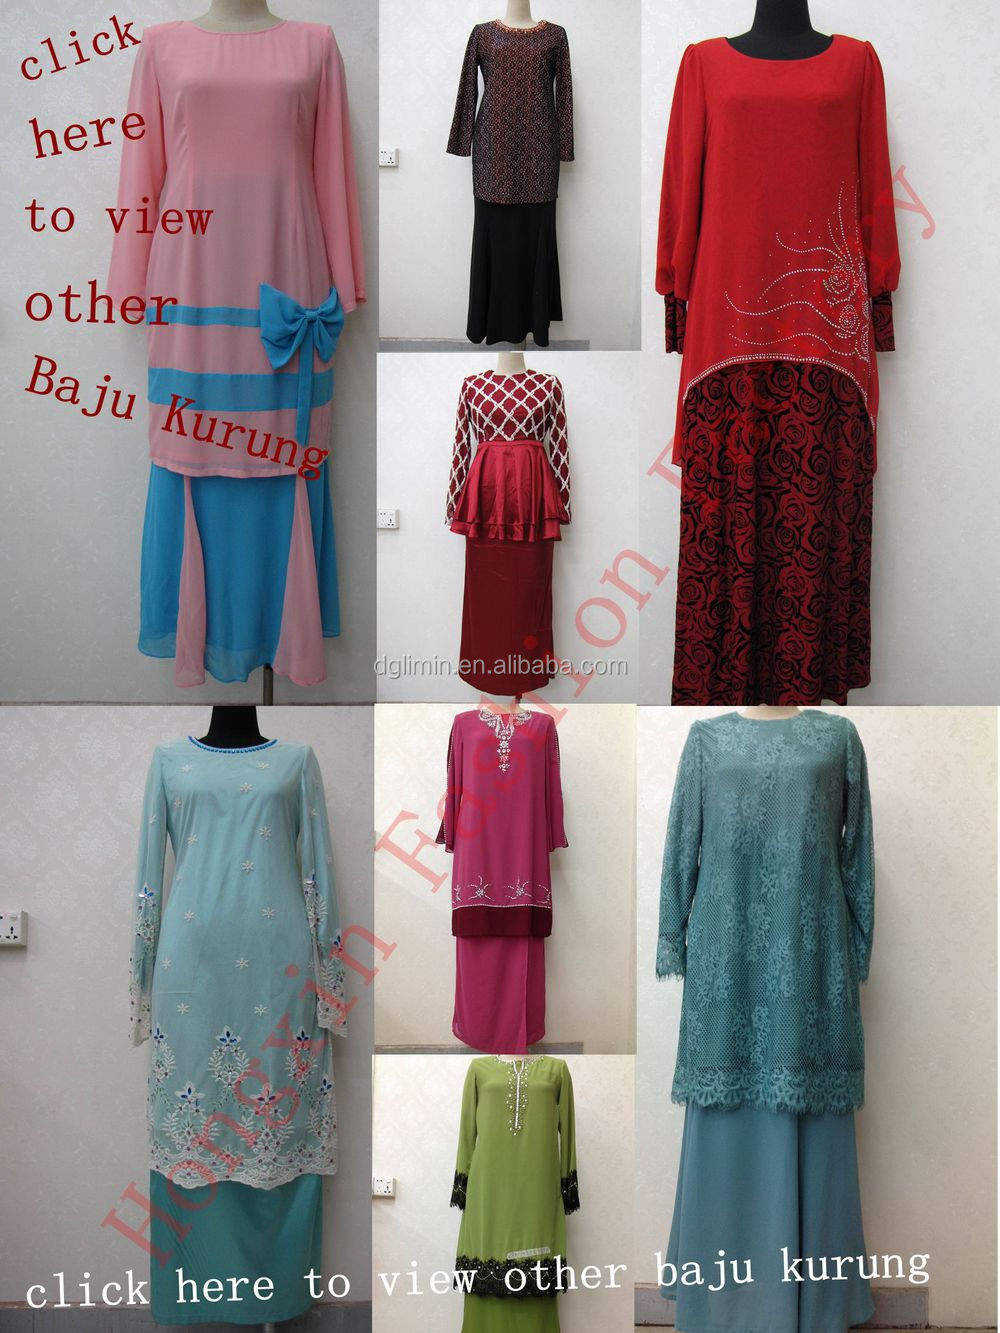 Baju Melayu For Women Wholesalers Abaya Baju Knrung Islamic Ethnic Clothing